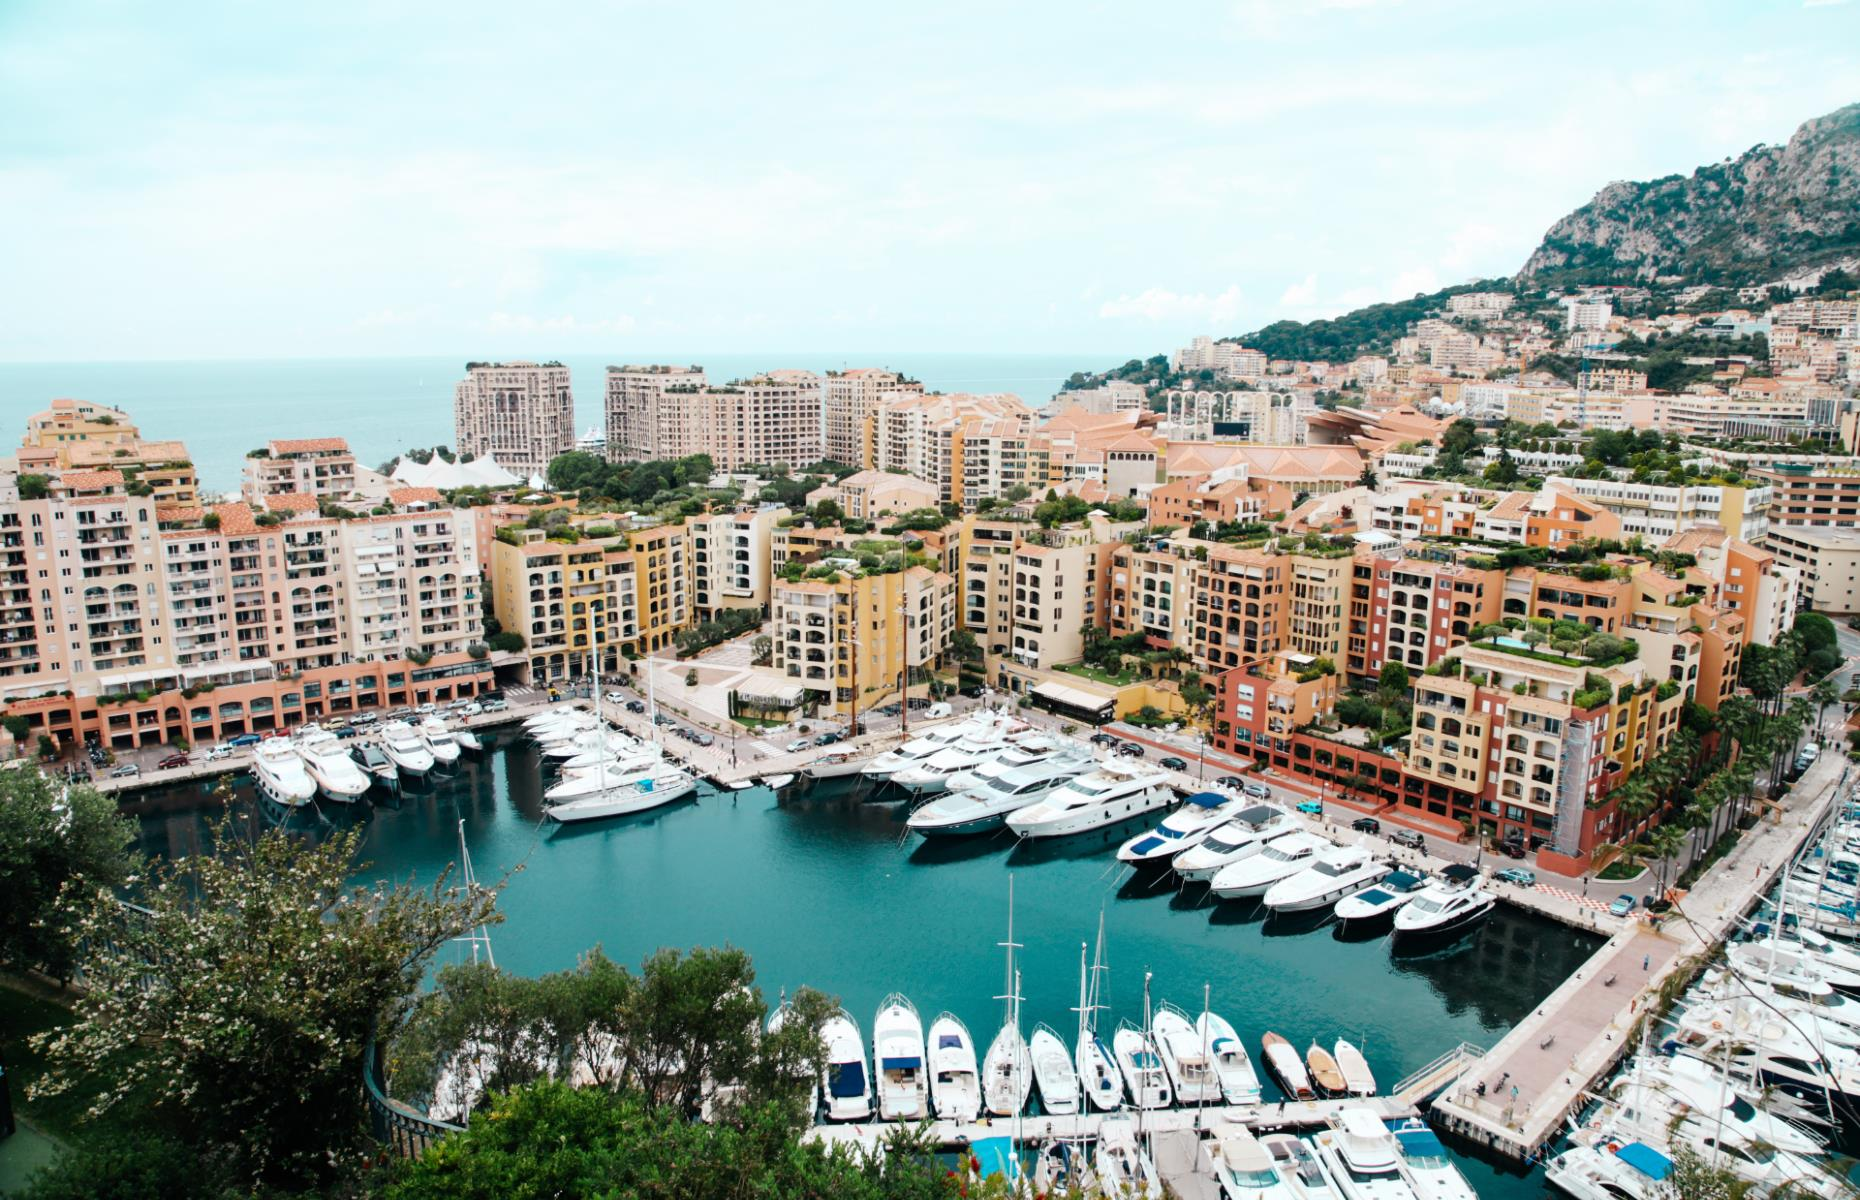 Slide 9 of 31: In the heart of glamorous Monaco, the small, enclosed Port de Fontvieille certainly provides its fair share of eye candy when it comes to luxury yachts. Set against Monaco's striking rocky hills, the waterside is also home to a number of bars, hotels and restaurants in which to kick back and gaze out at the view.